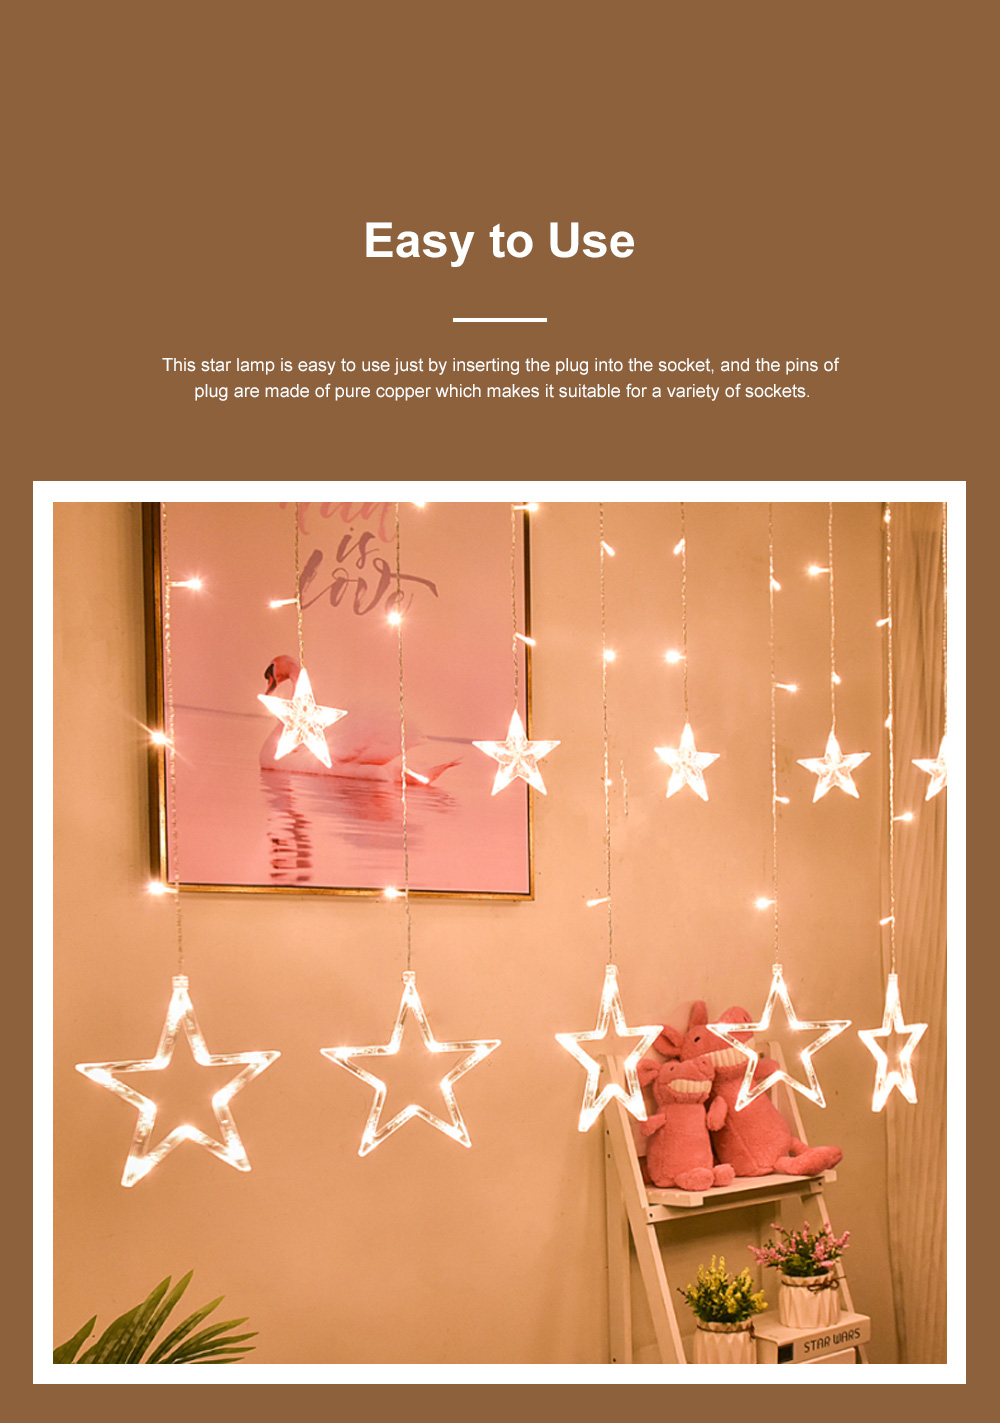 3m Twinkle Star String Lights Waterproof Star Curtain Lights with Color Changing for Wedding Christmas Home Garden Party Festival Decoration 2